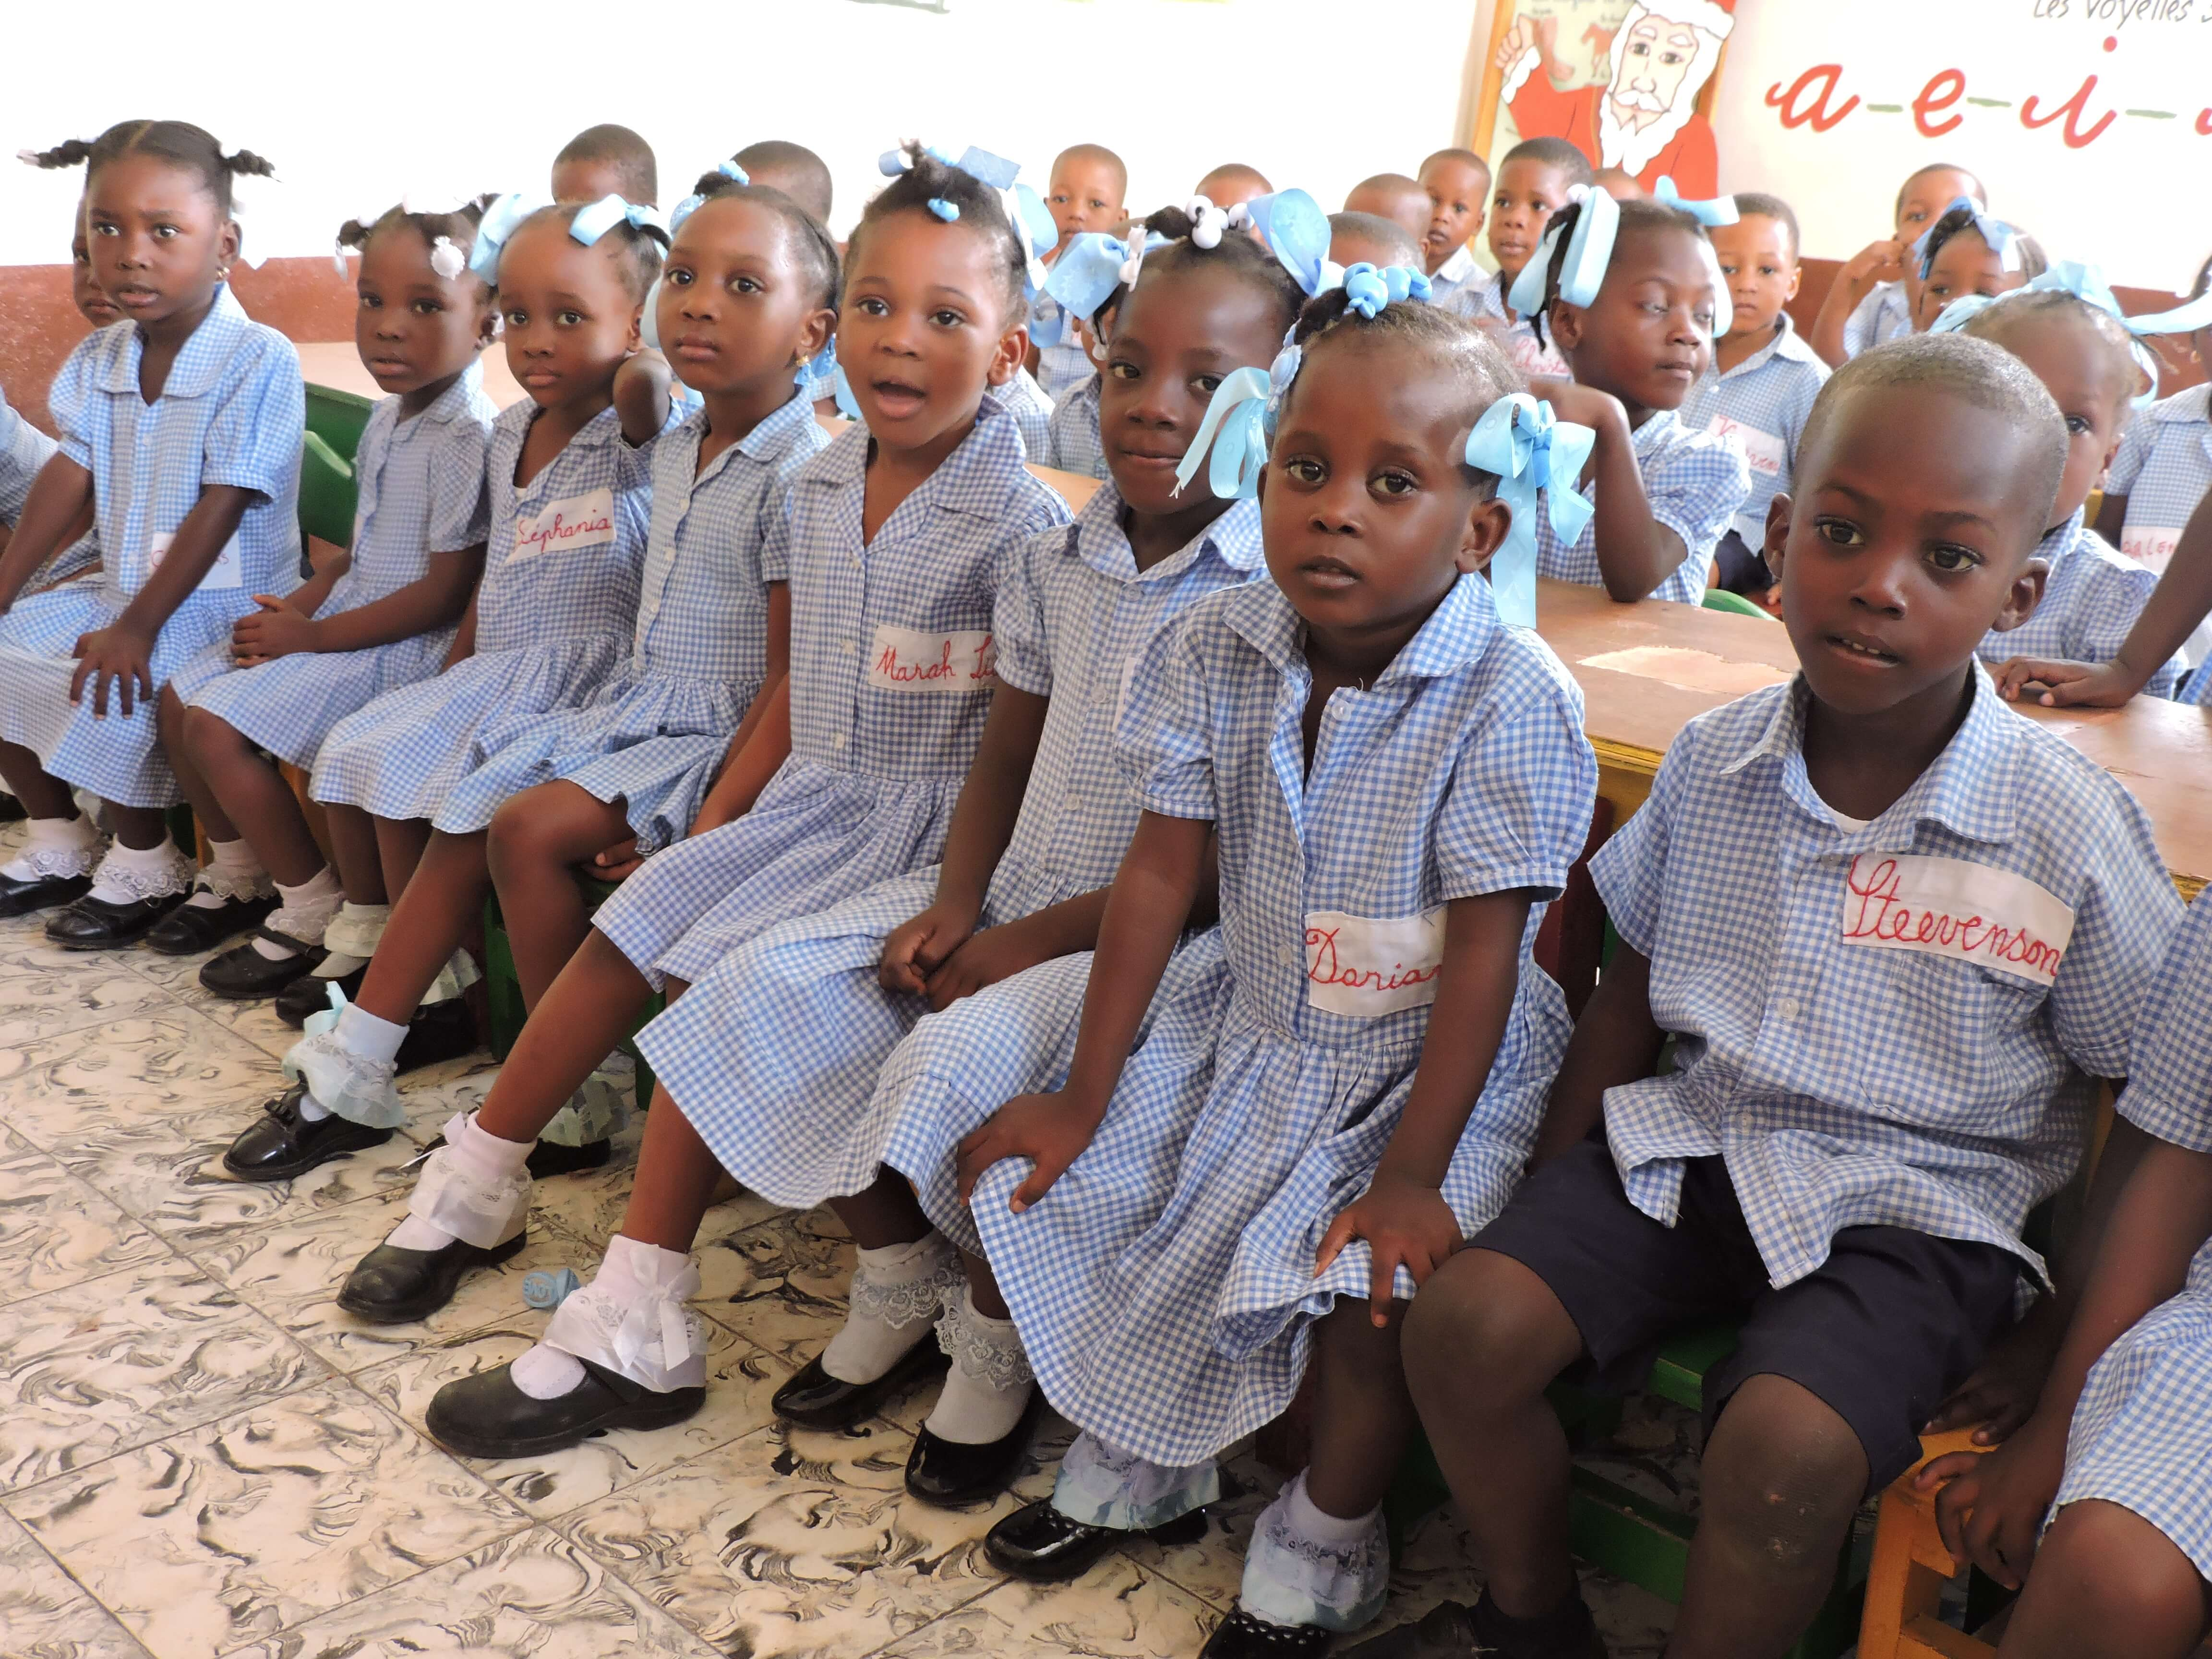 Schools In Haiti Archdiocese Of Baltimore